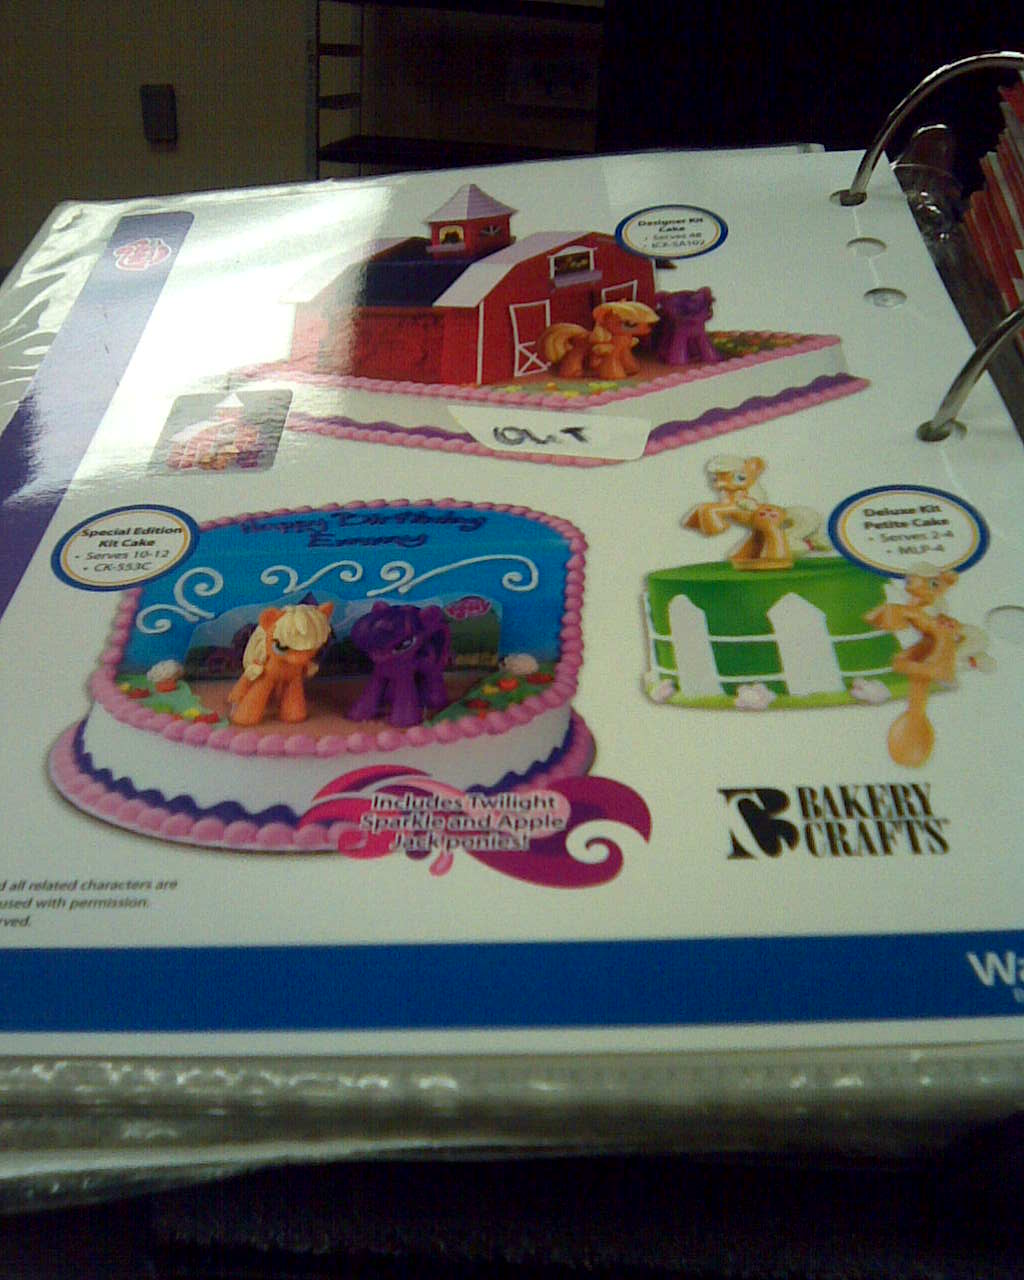 Equestria Daily MLP Stuff More Pony Cakes at WalMart